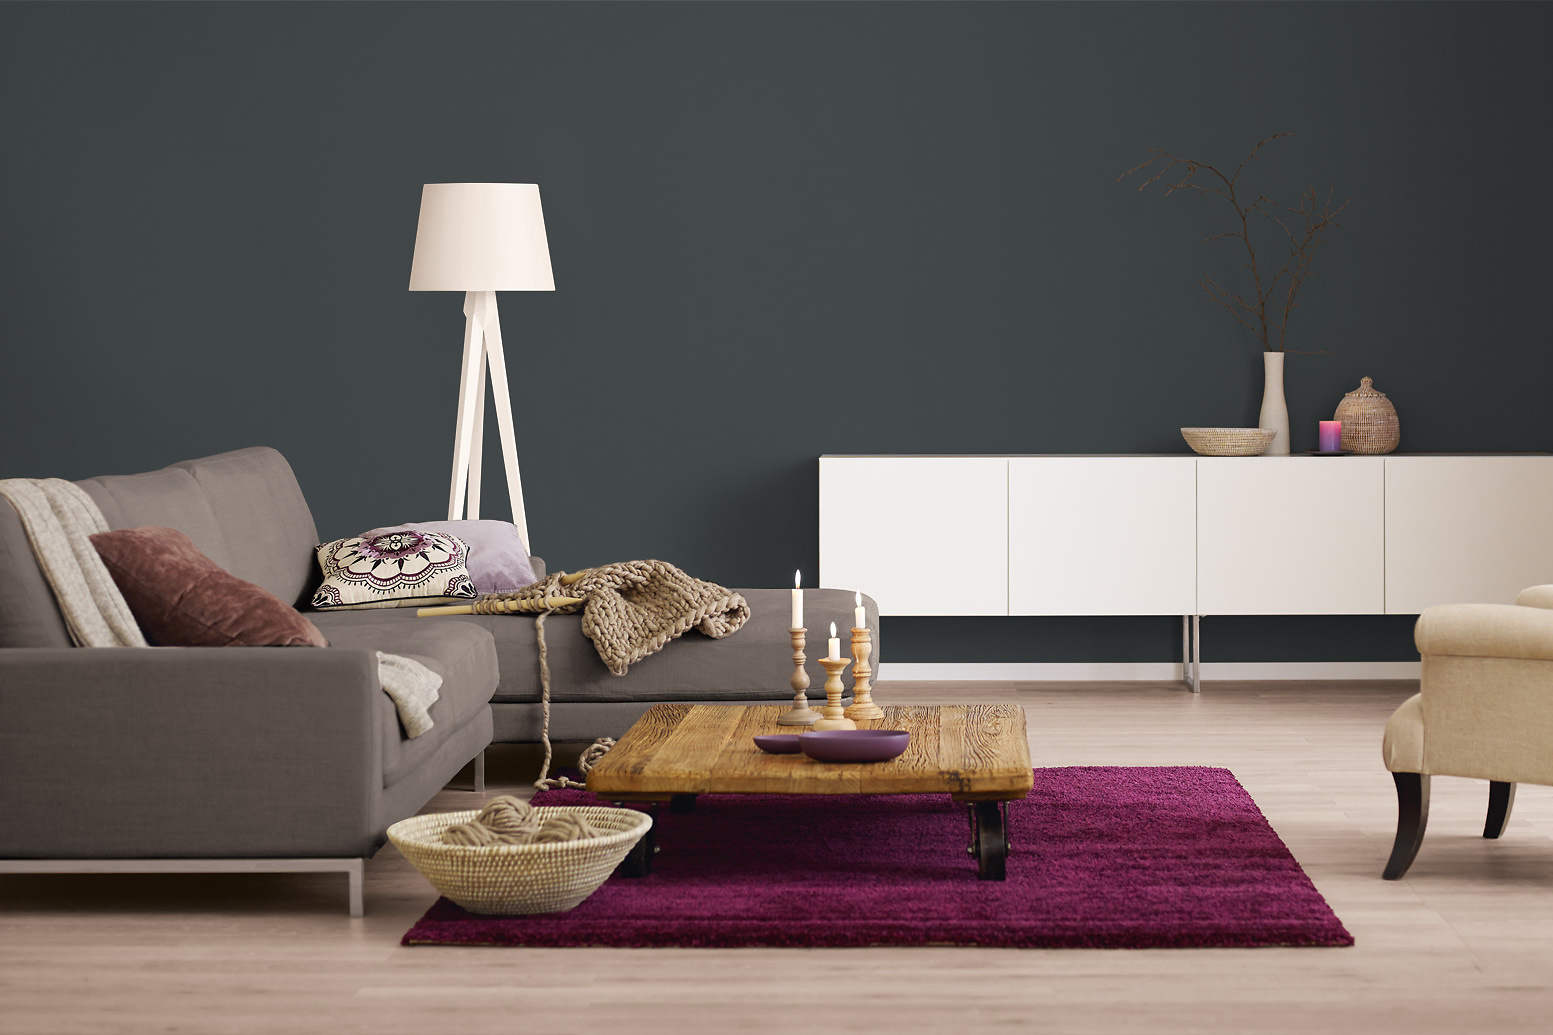 innenfarbe in grau anthrazit streichen alpina farbrezepte dunkle eleganz alpina farben. Black Bedroom Furniture Sets. Home Design Ideas